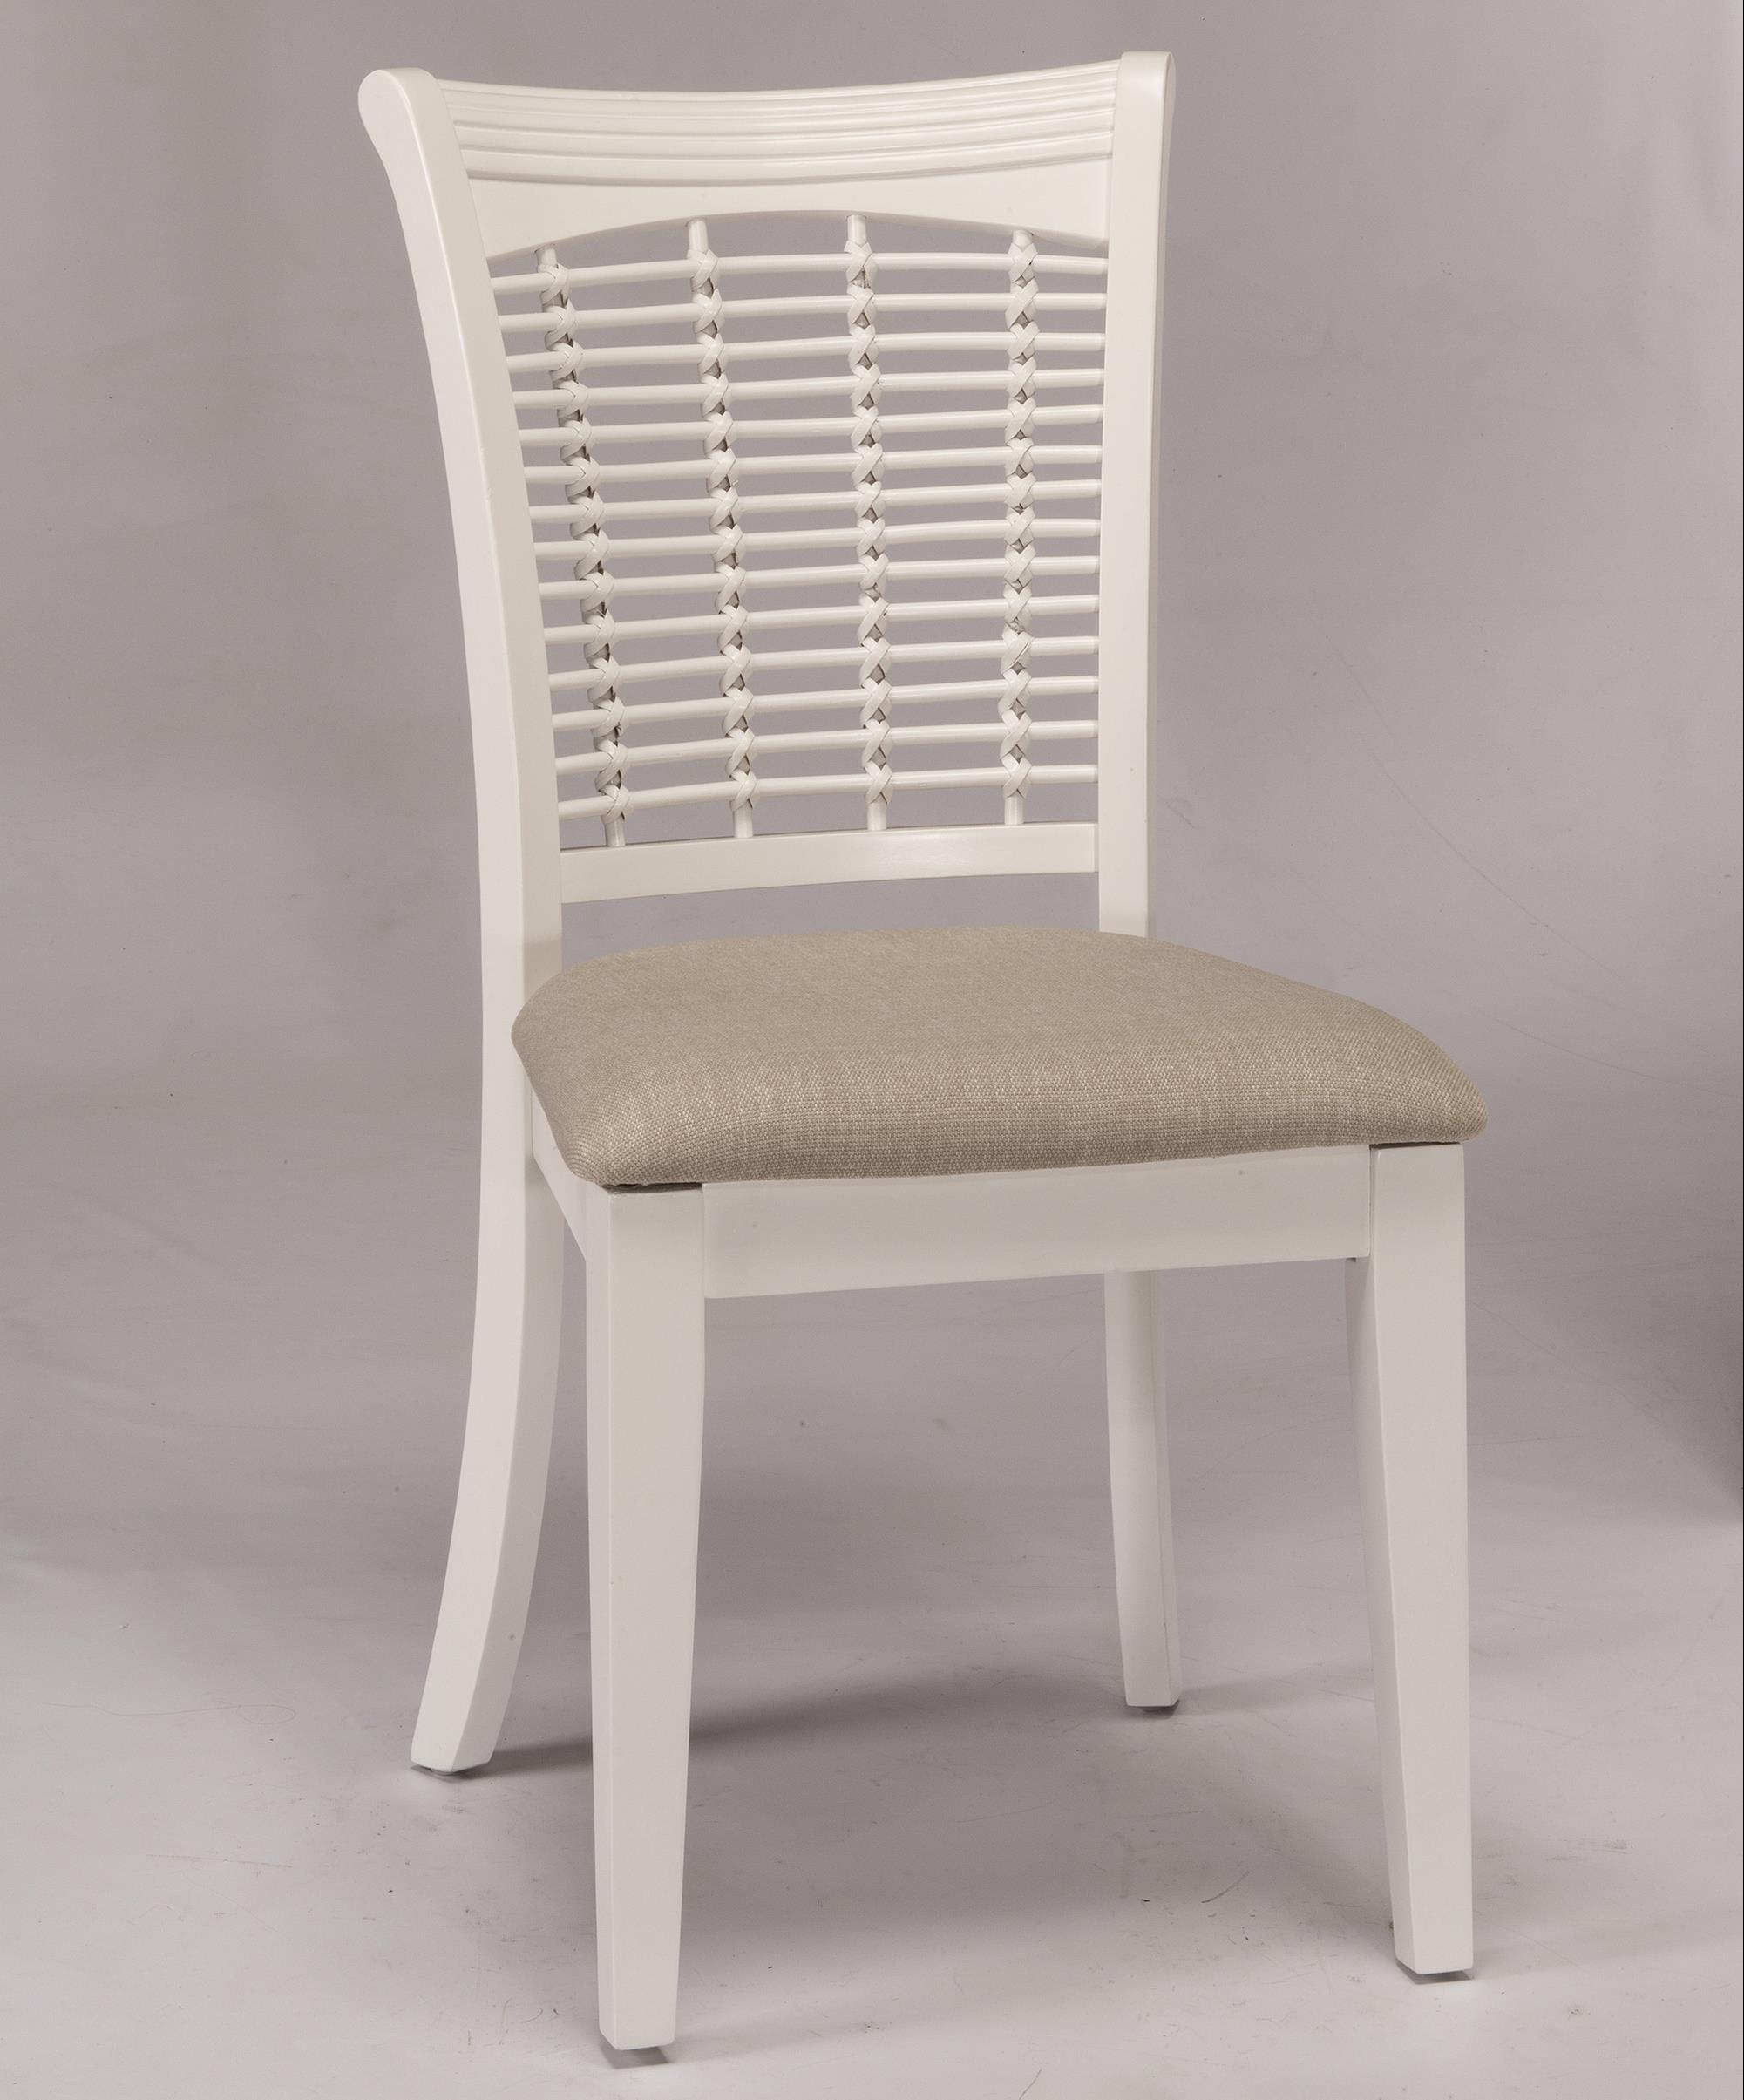 Hillsdale Bayberry White Wicker Chair - Item Number: 5791-802